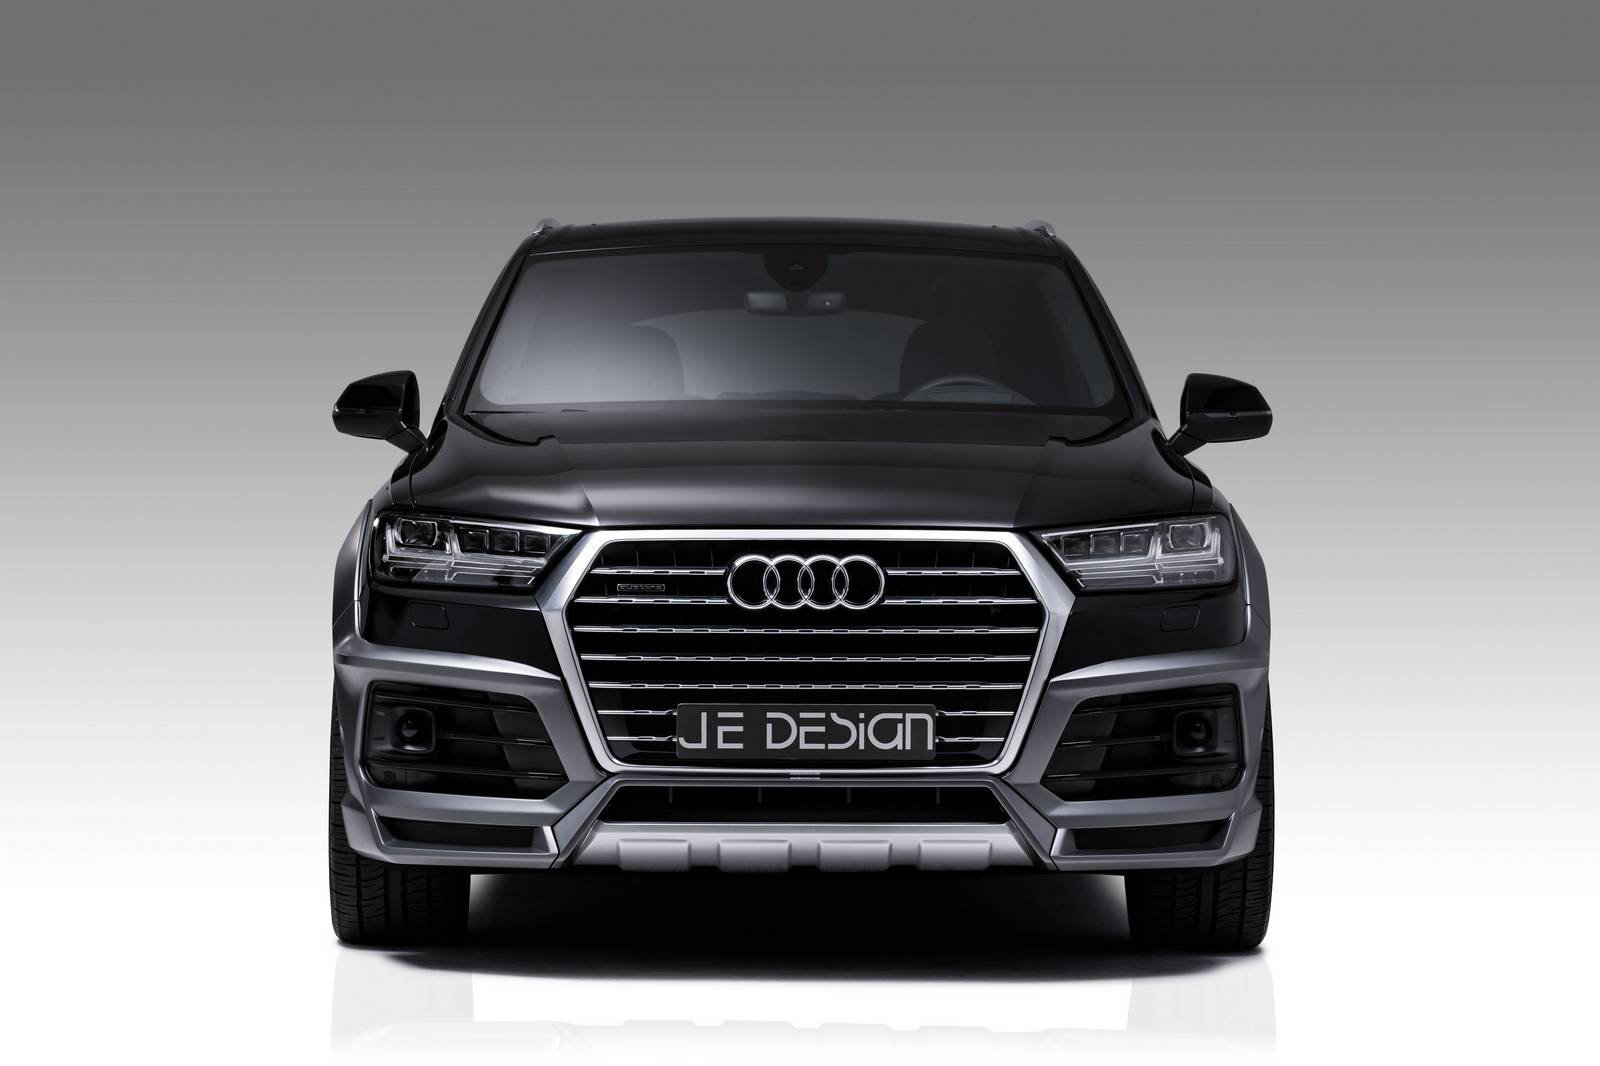 official audi sq7 and q7 widebody by je design gtspirit. Black Bedroom Furniture Sets. Home Design Ideas